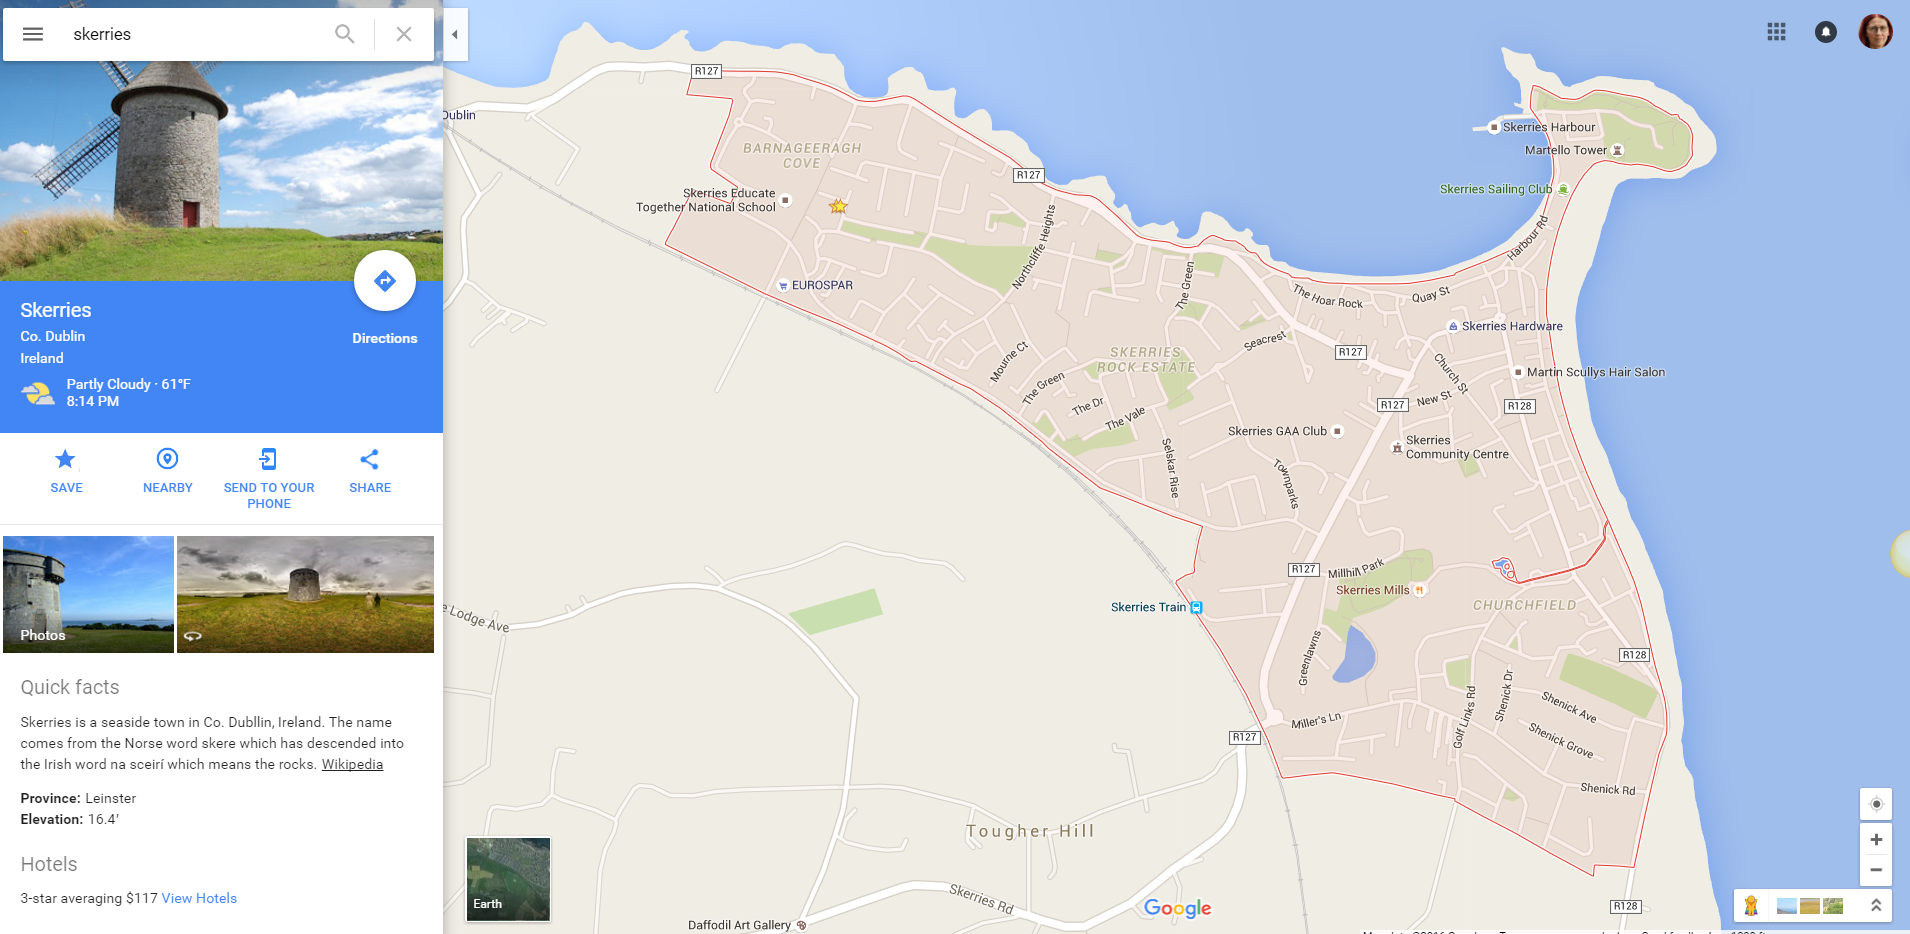 Skerries on Google Maps